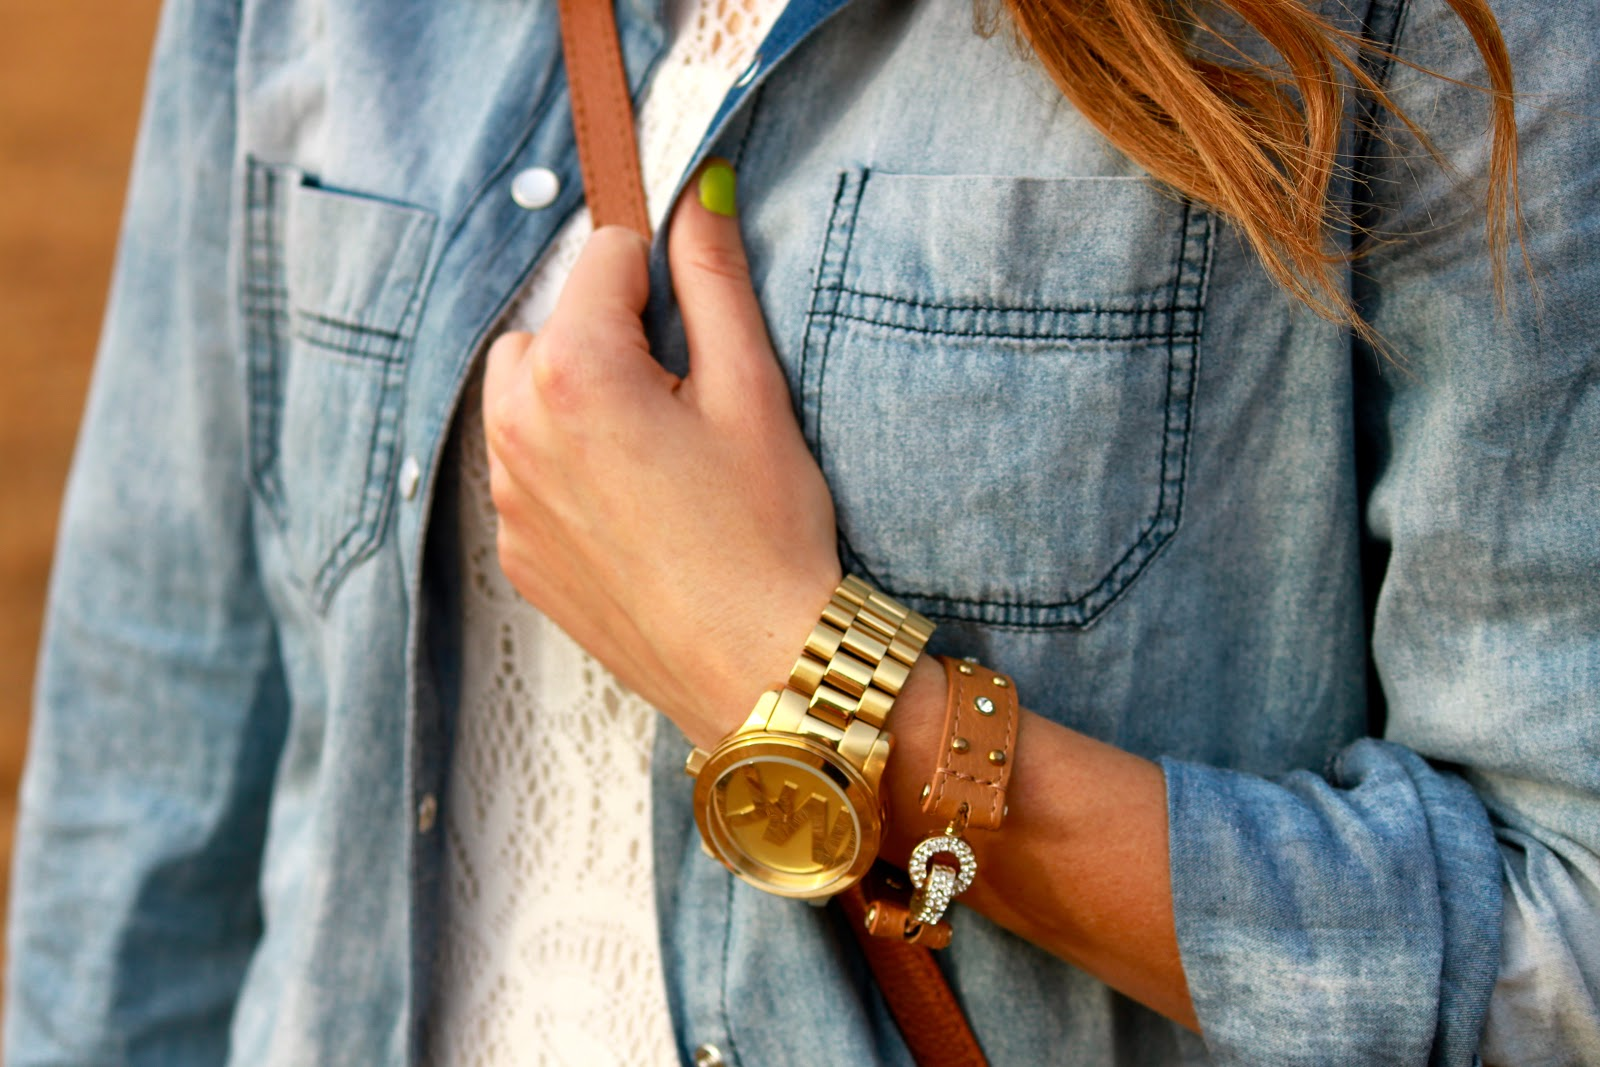 Chambray Lace And Why Every Guy Should Be On Pinterest